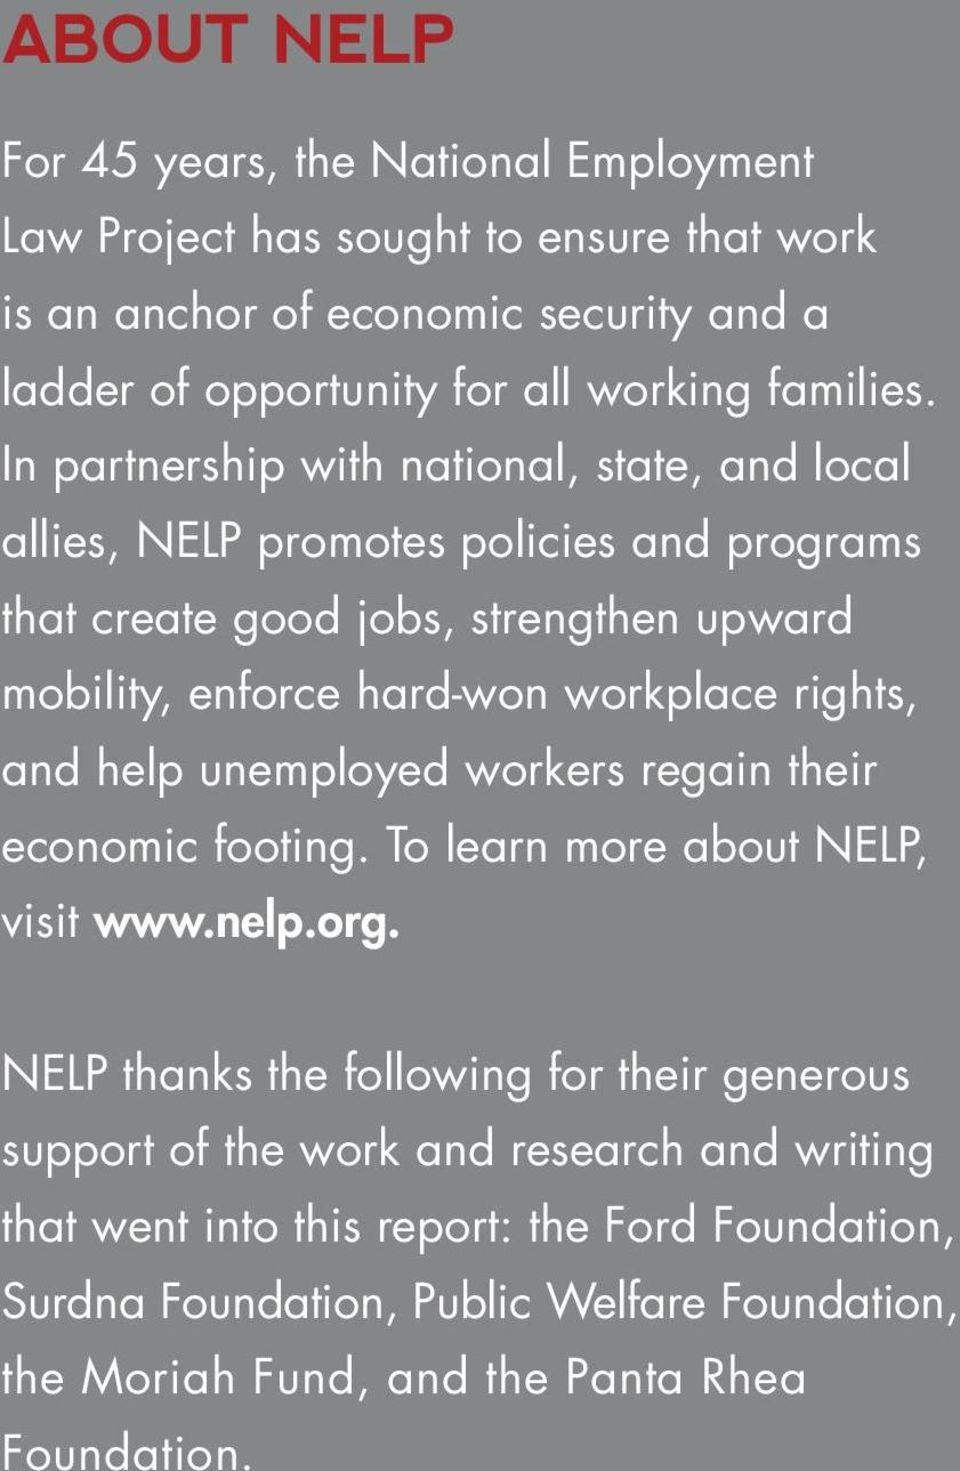 In partnership with national, state, and local allies, NELP promotes policies and programs that create good jobs, strengthen upward mobility, enforce hard-won workplace